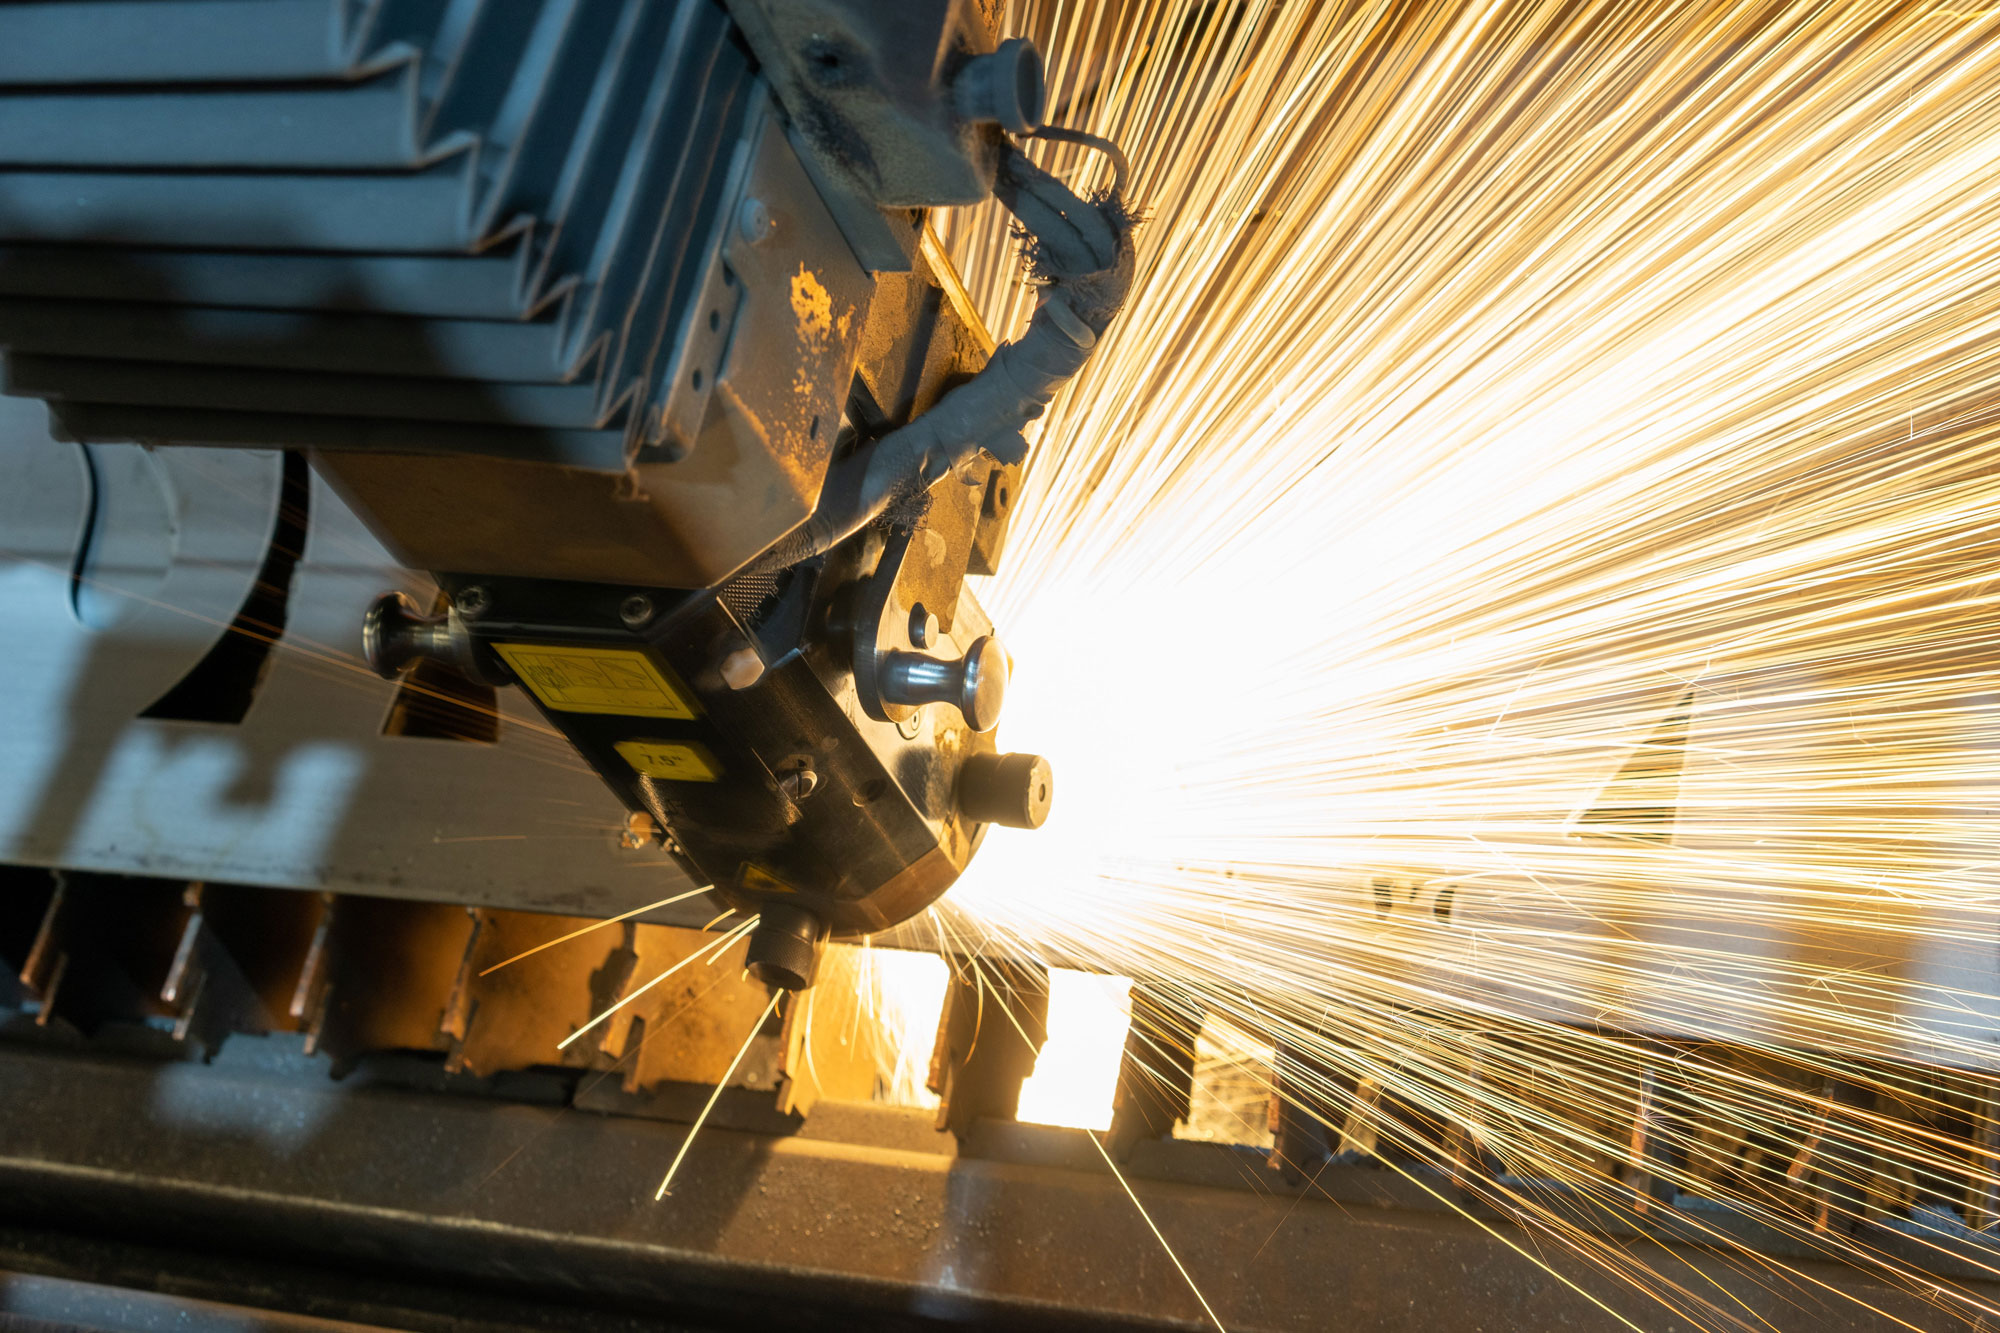 Metals manufacturing and metal parts manufacturing